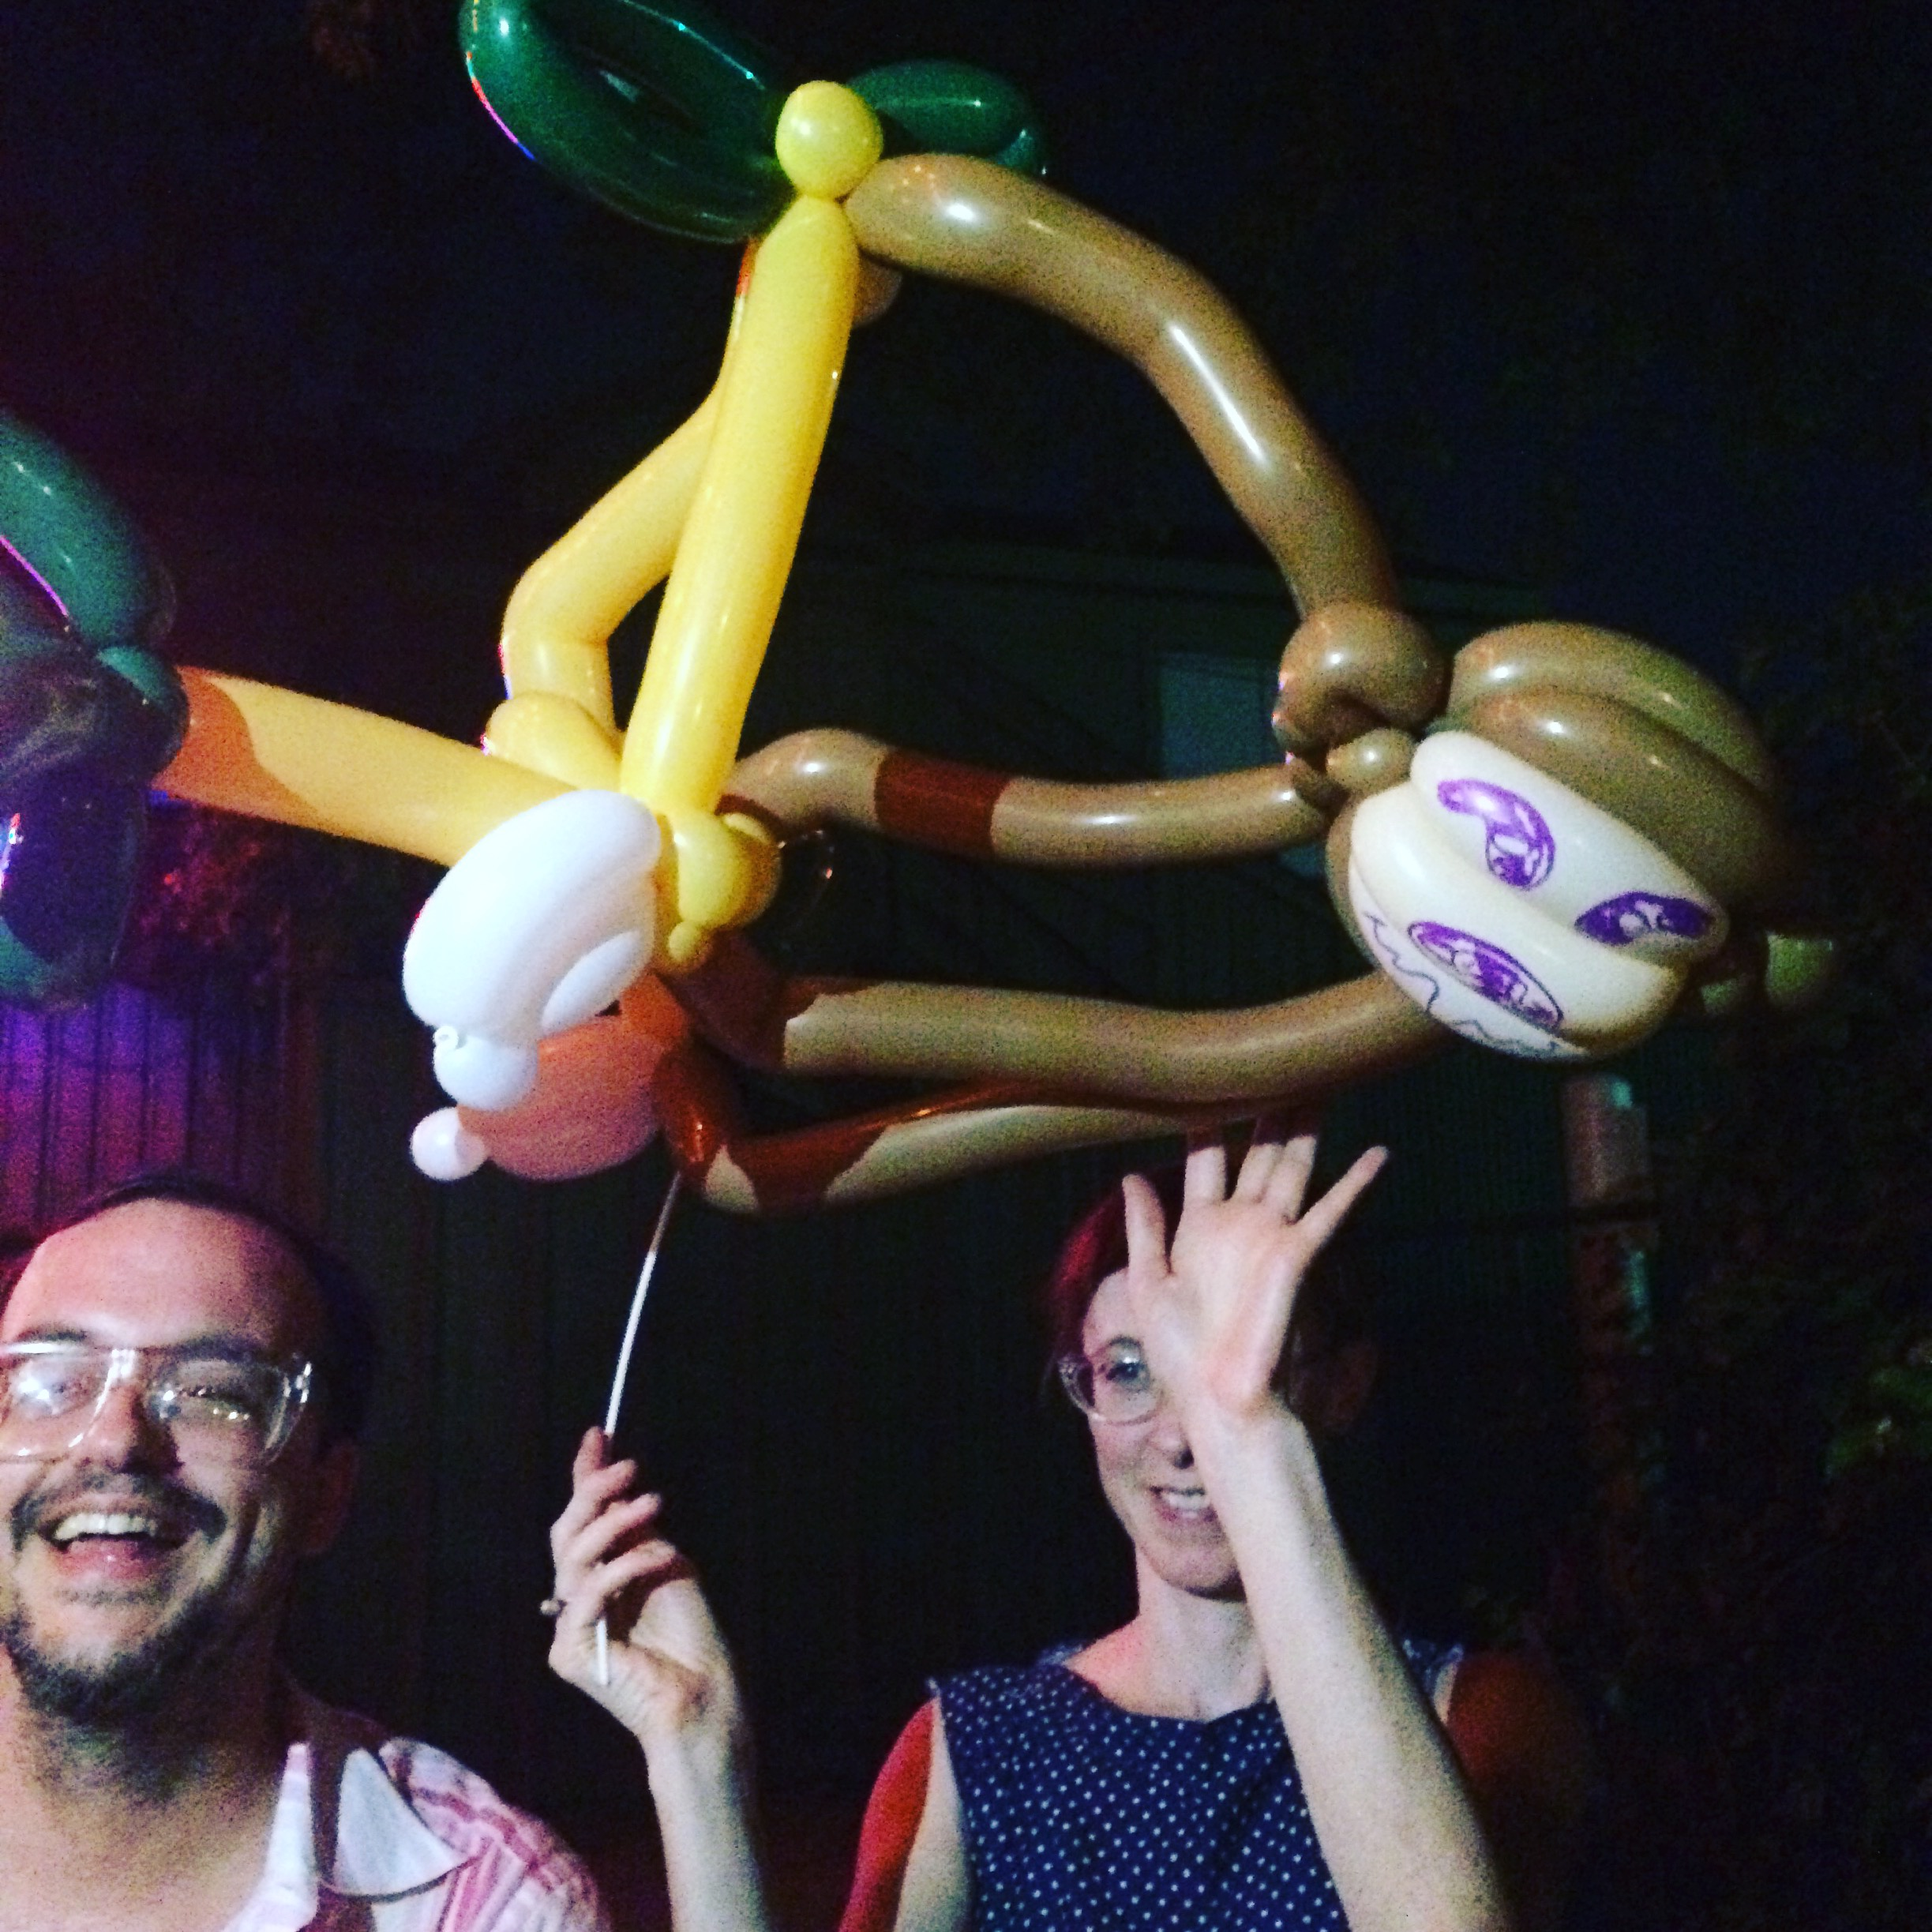 Attempting a sloth balloon animal is harder than it looks